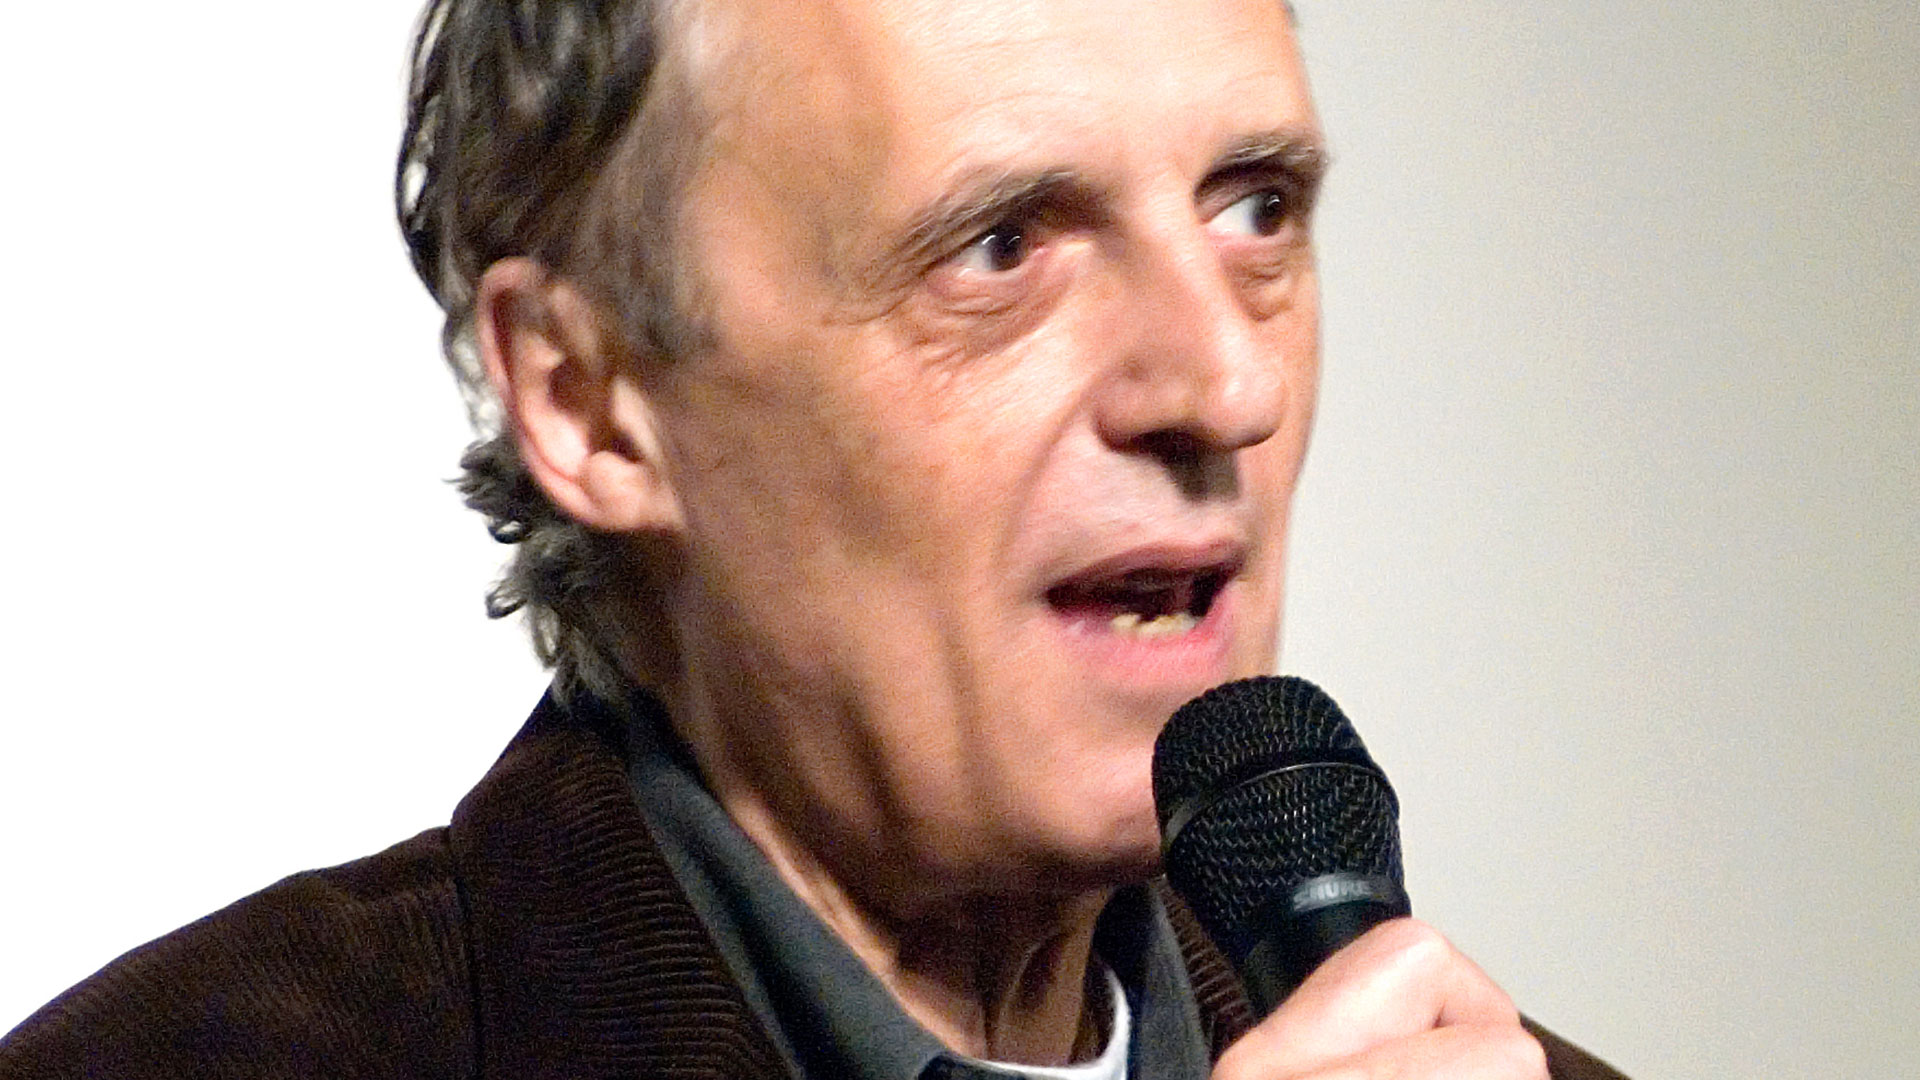 In 2005, Italian gore cult film director Dario Argento won a career achievement award in Fantasporto